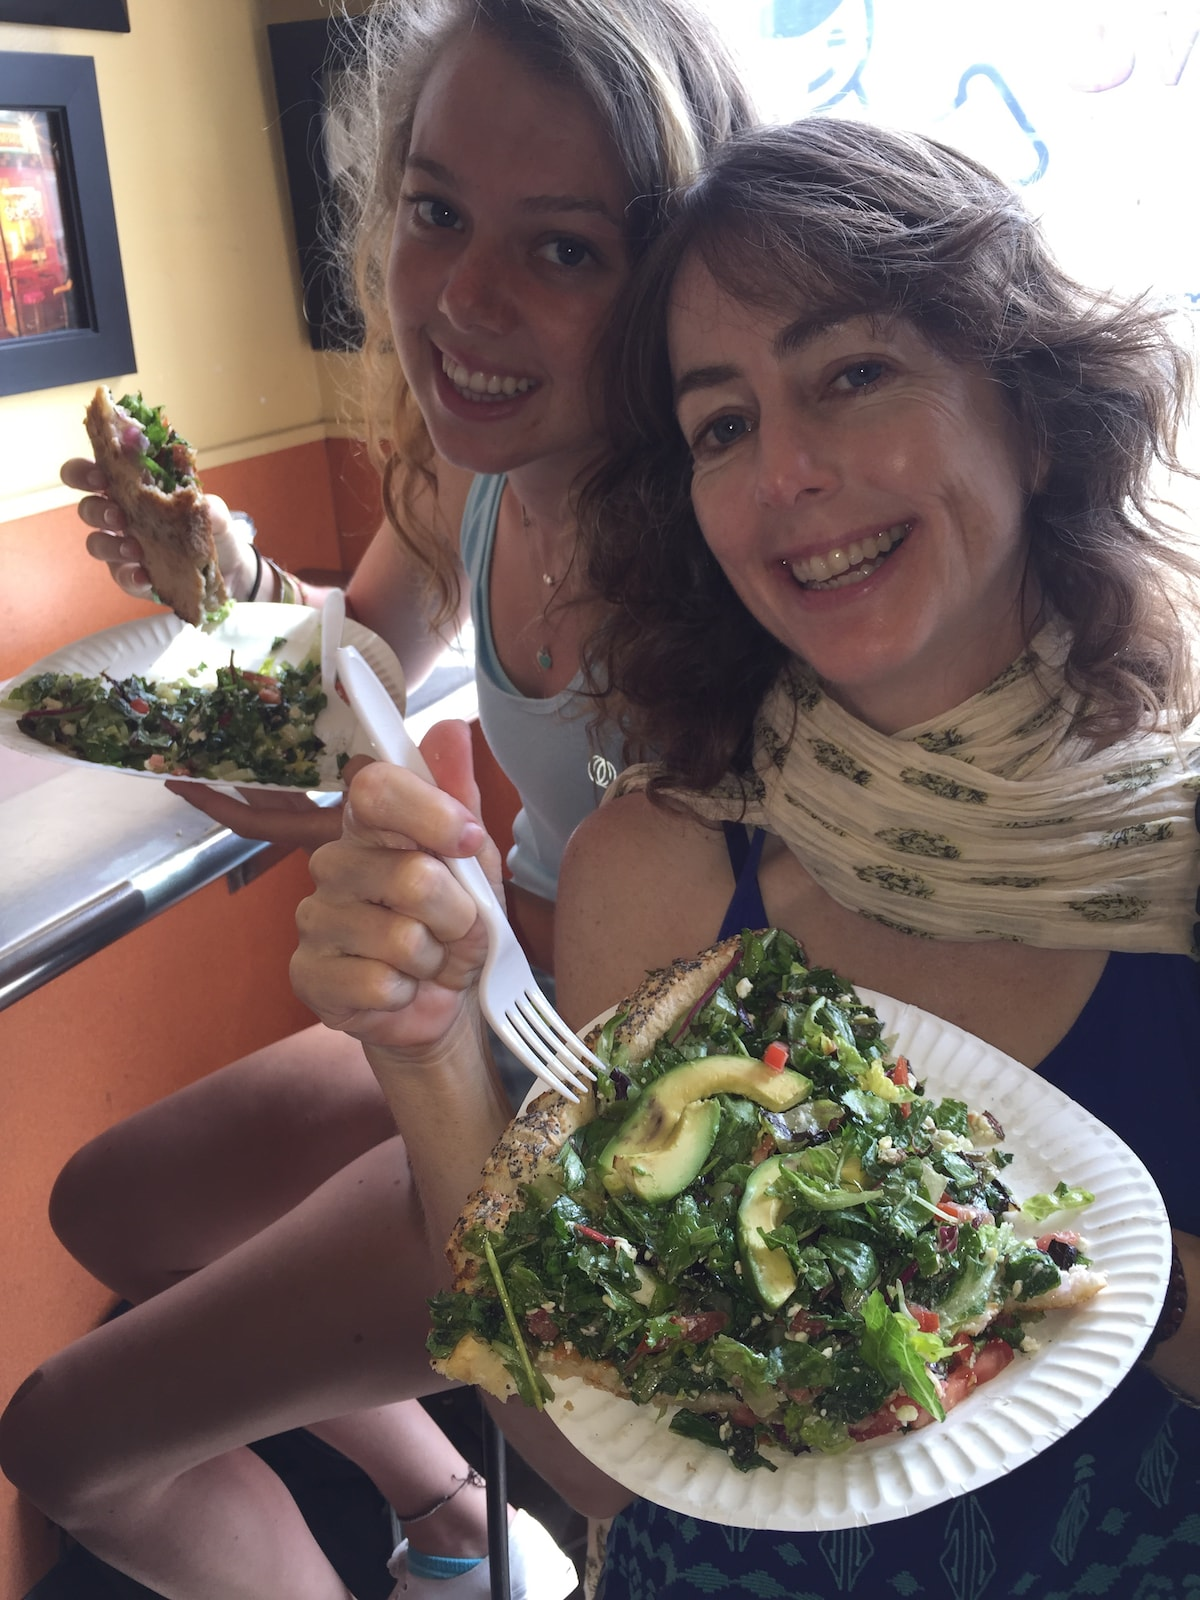 """(profile photo: sharing famous Abbot Pizza """"salad"""